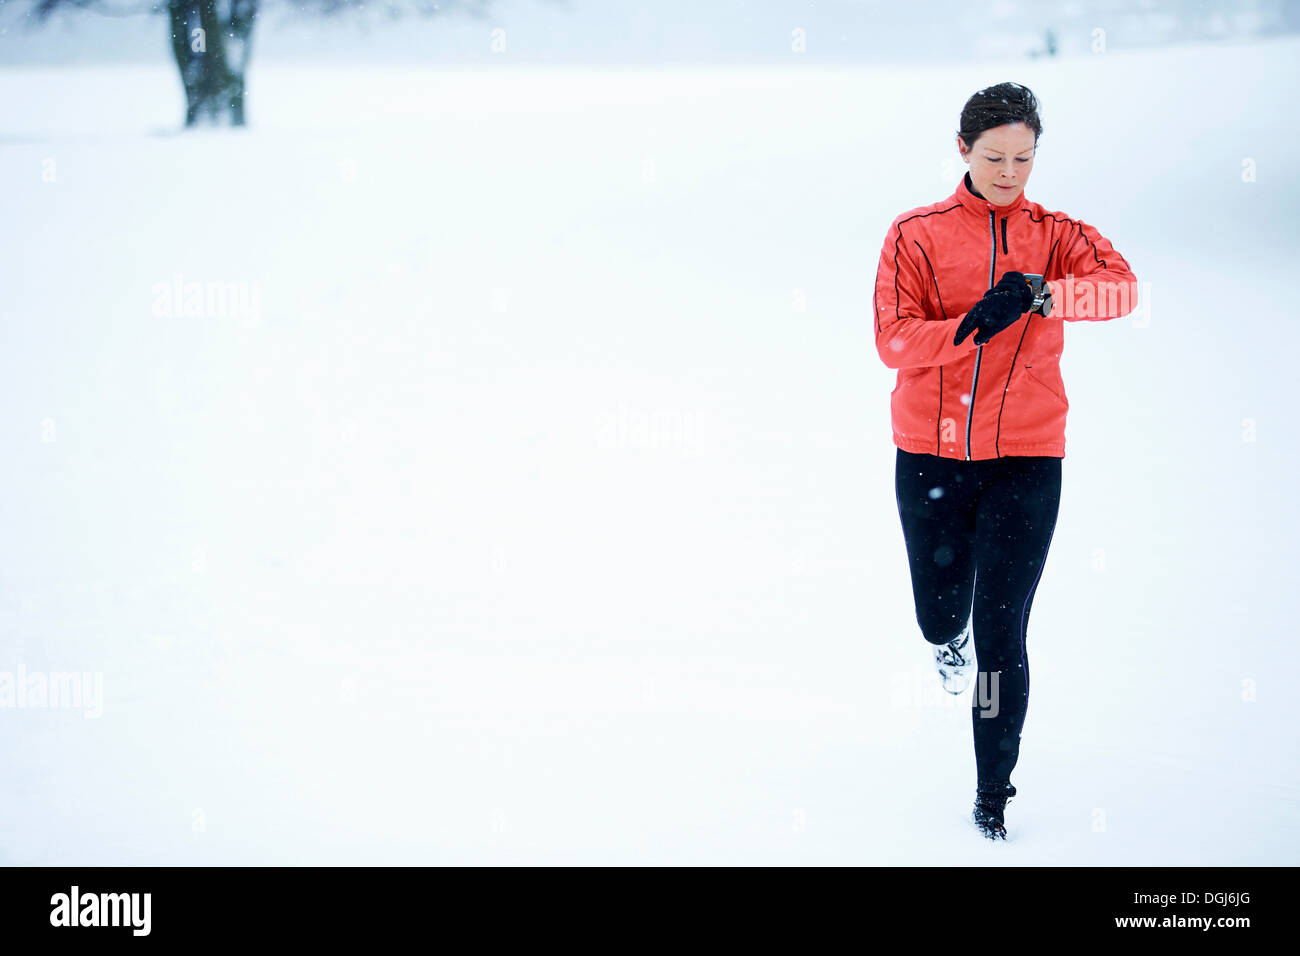 Woman timing her snow running - Stock Image